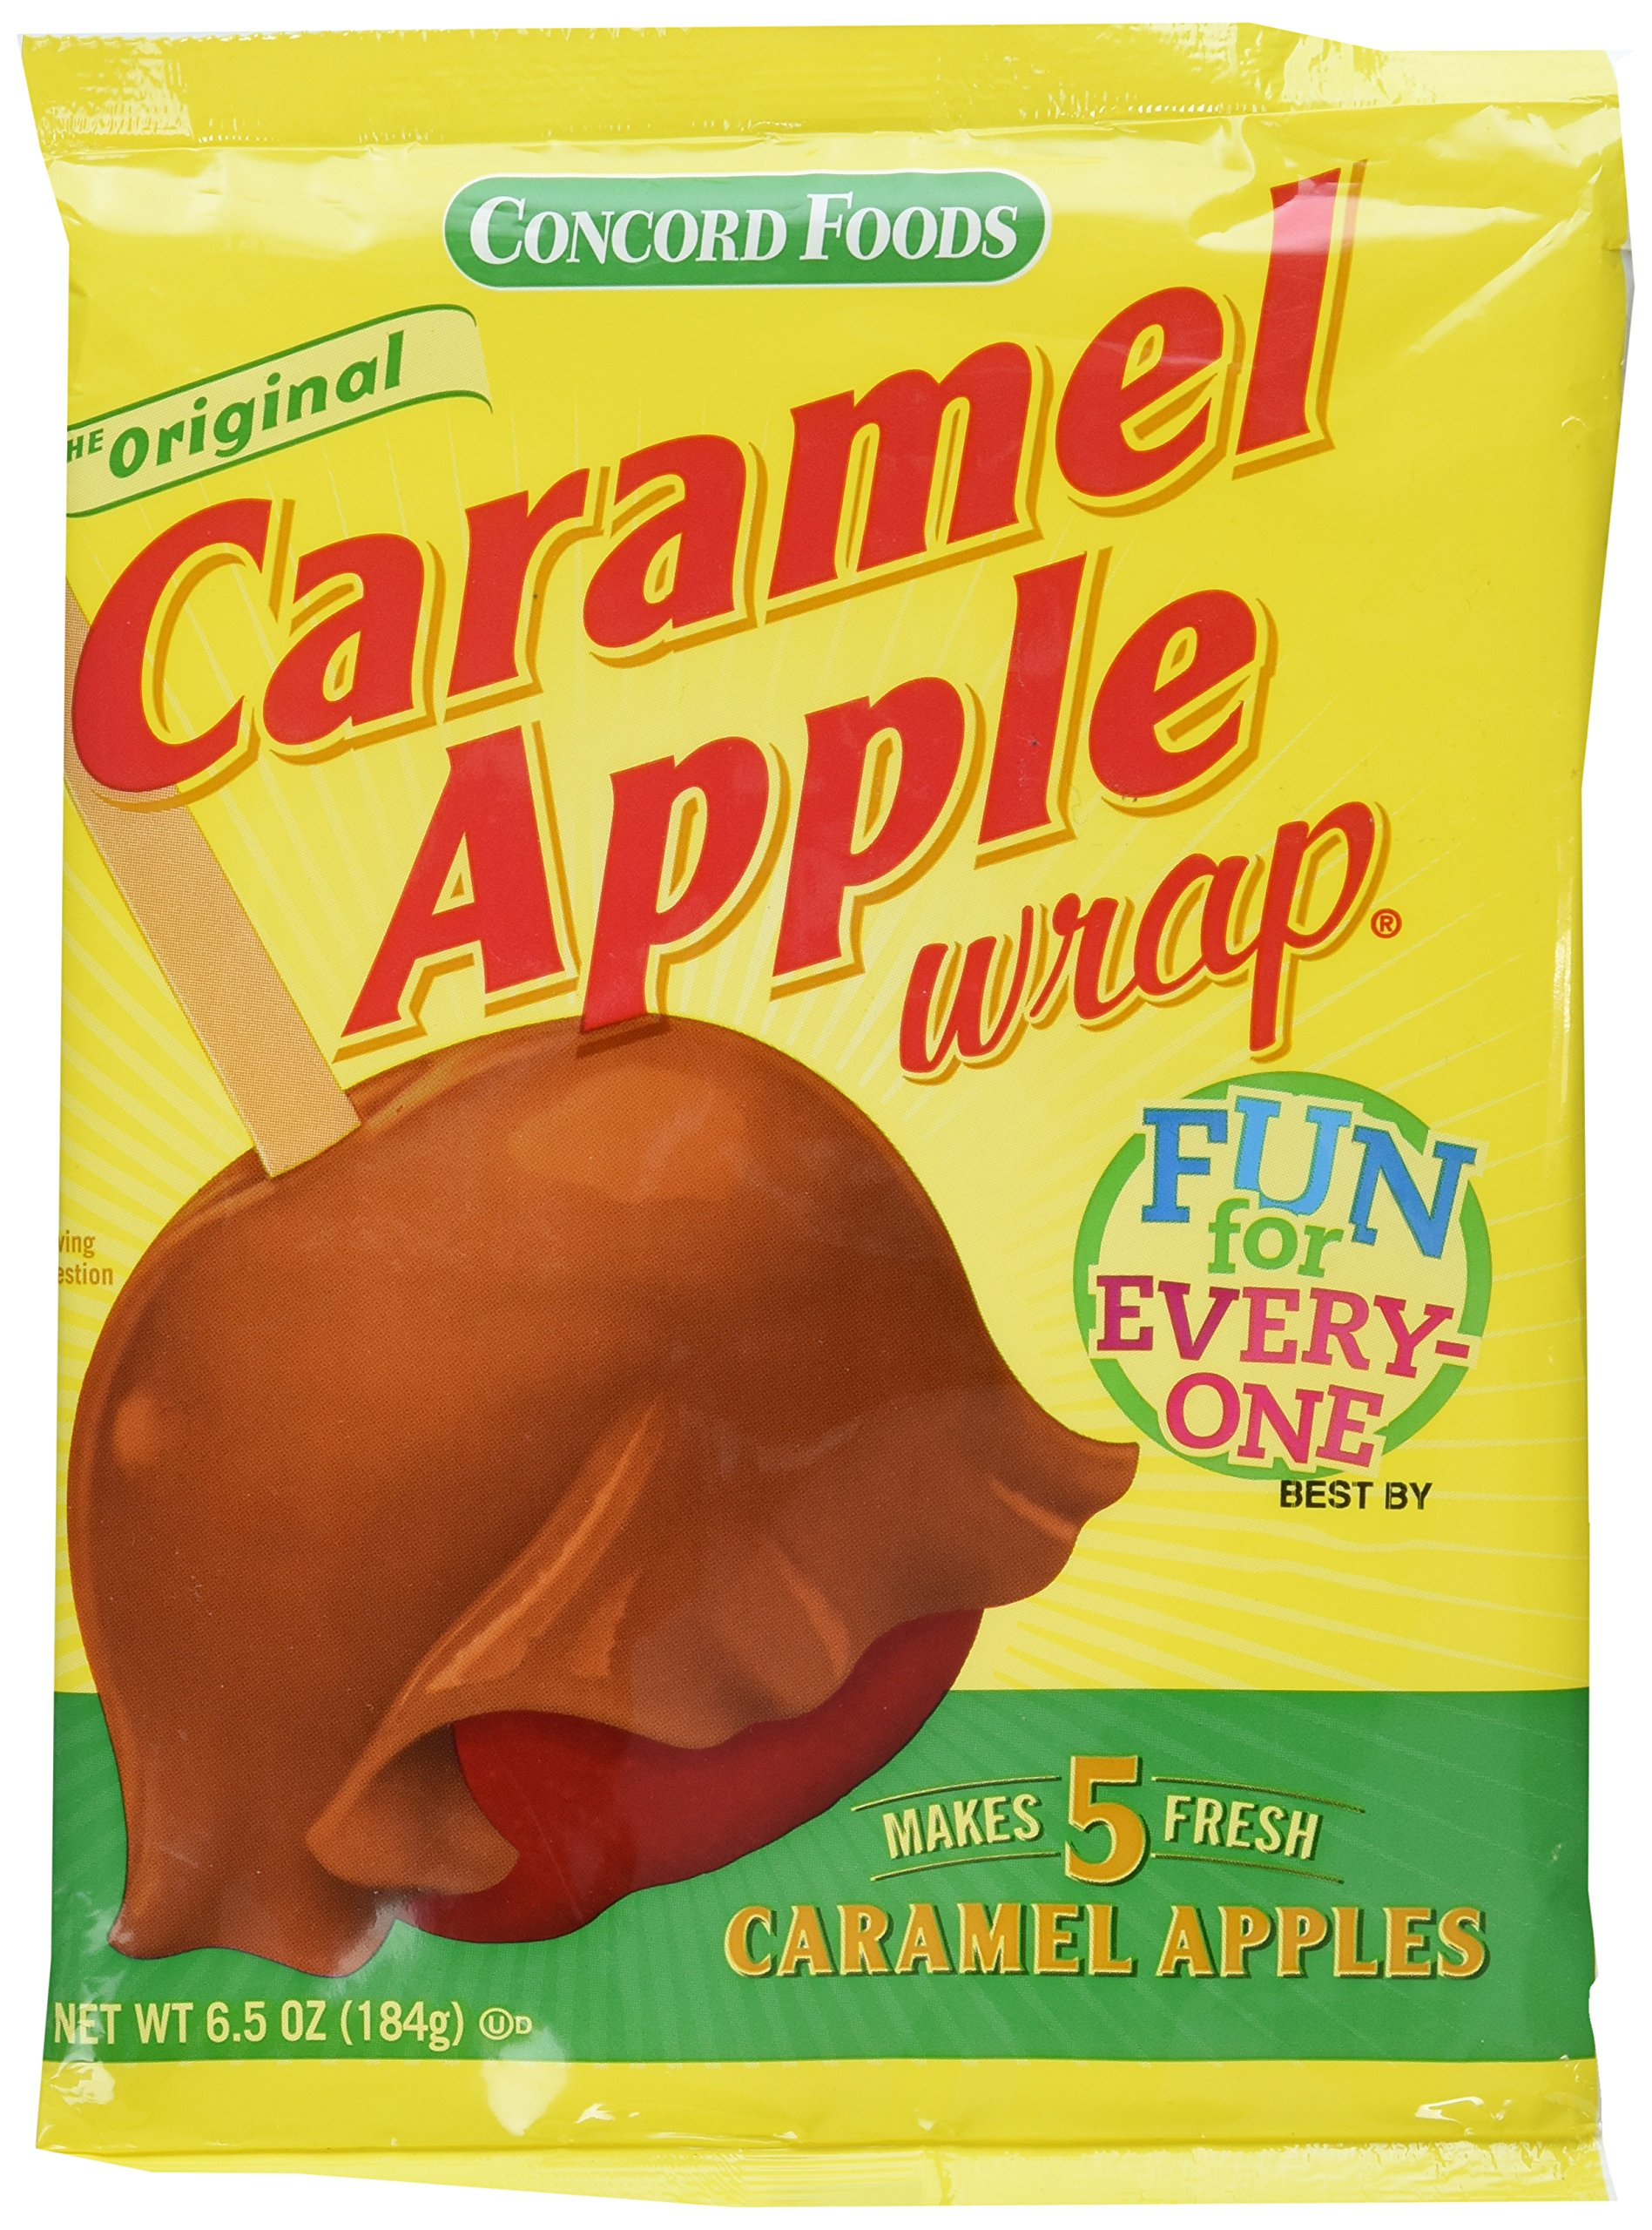 Concord Caramel Apple Wrap 6.05 oz Package (Value 3 Pack - Makes 15 Fresh Caramel Apples) by Concord Foods